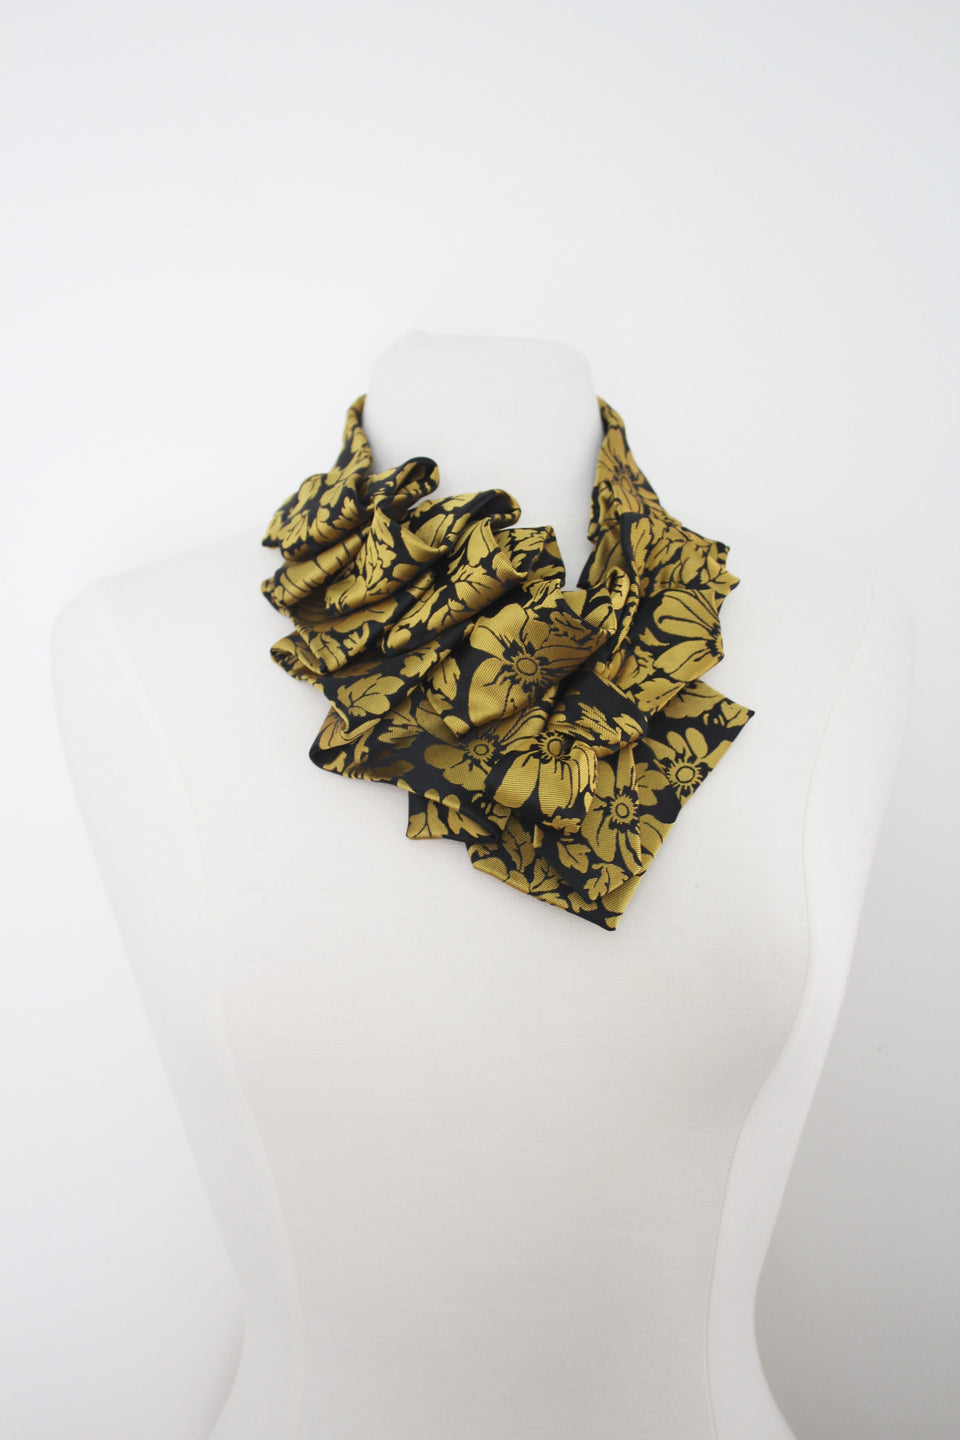 Ruffle Aster handmade snap on scarf golf paisley jewlery collar